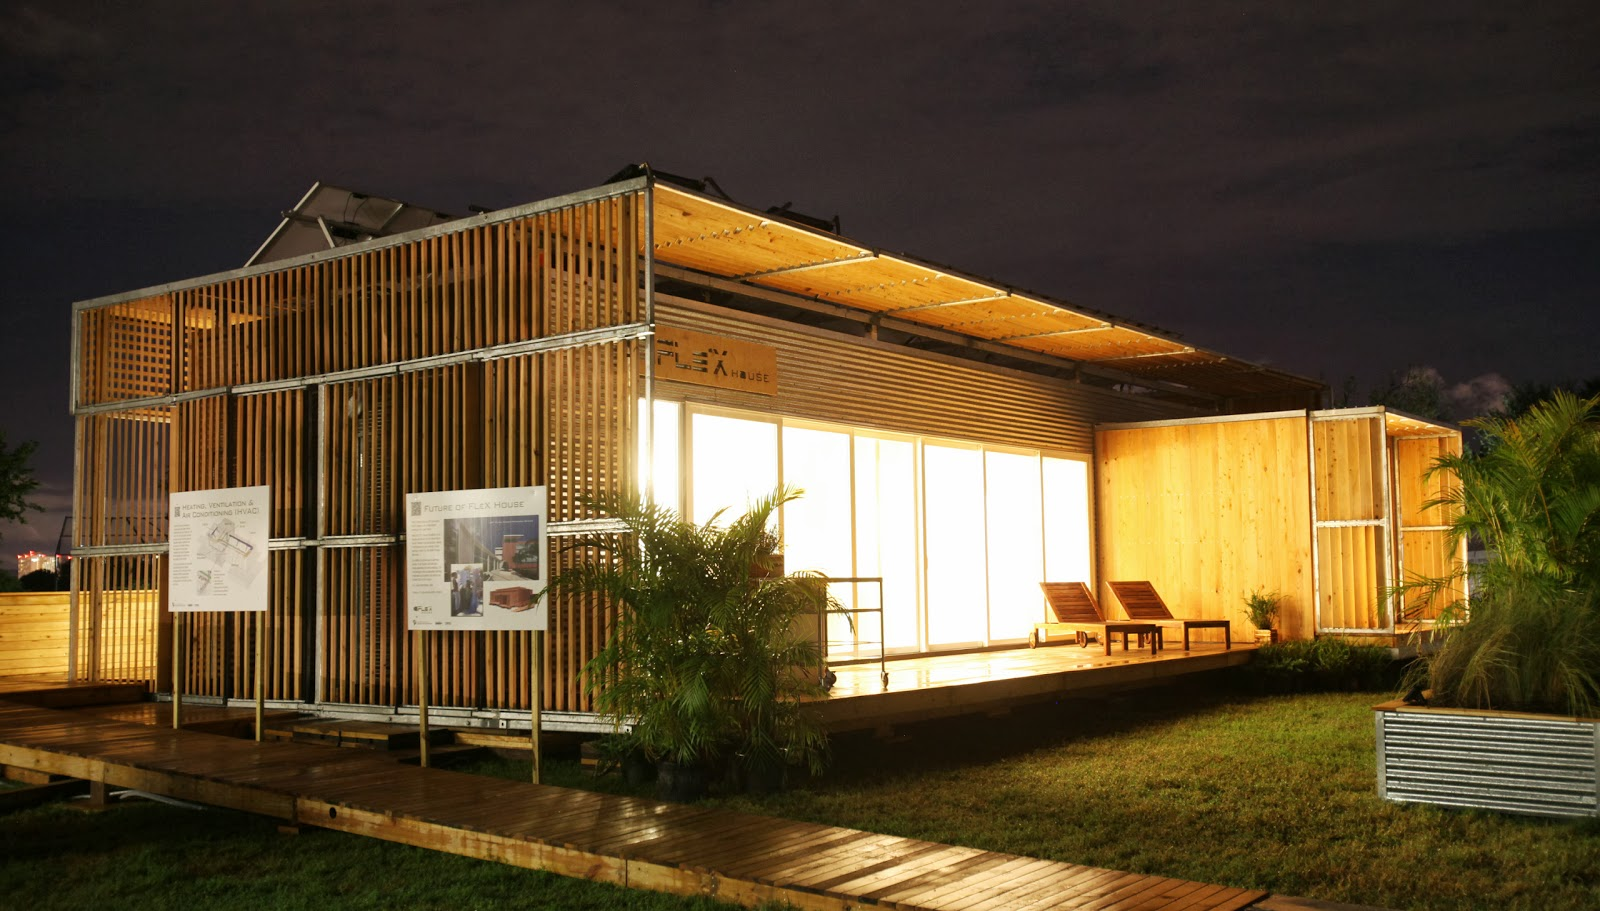 10 examples of large shipping container homes | Container ...